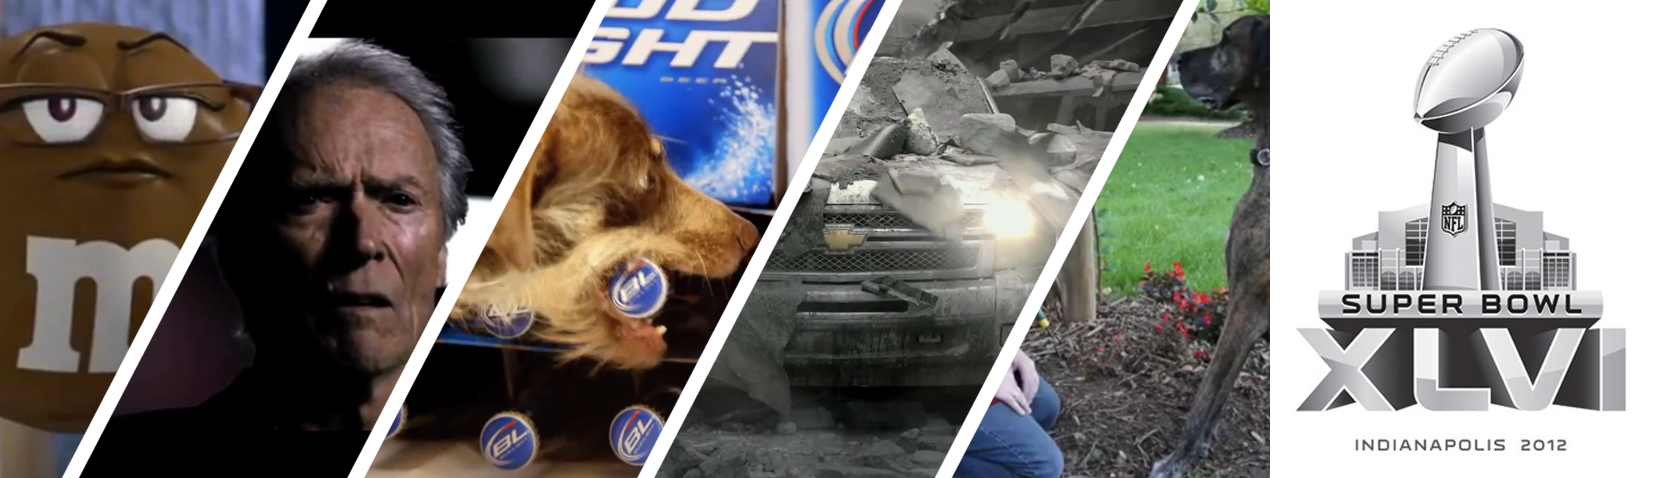 llllitl-super-bowl-2012-youtube-adblitz-5-best-commercials-meilleures-publicités-vote-nbc-sports2